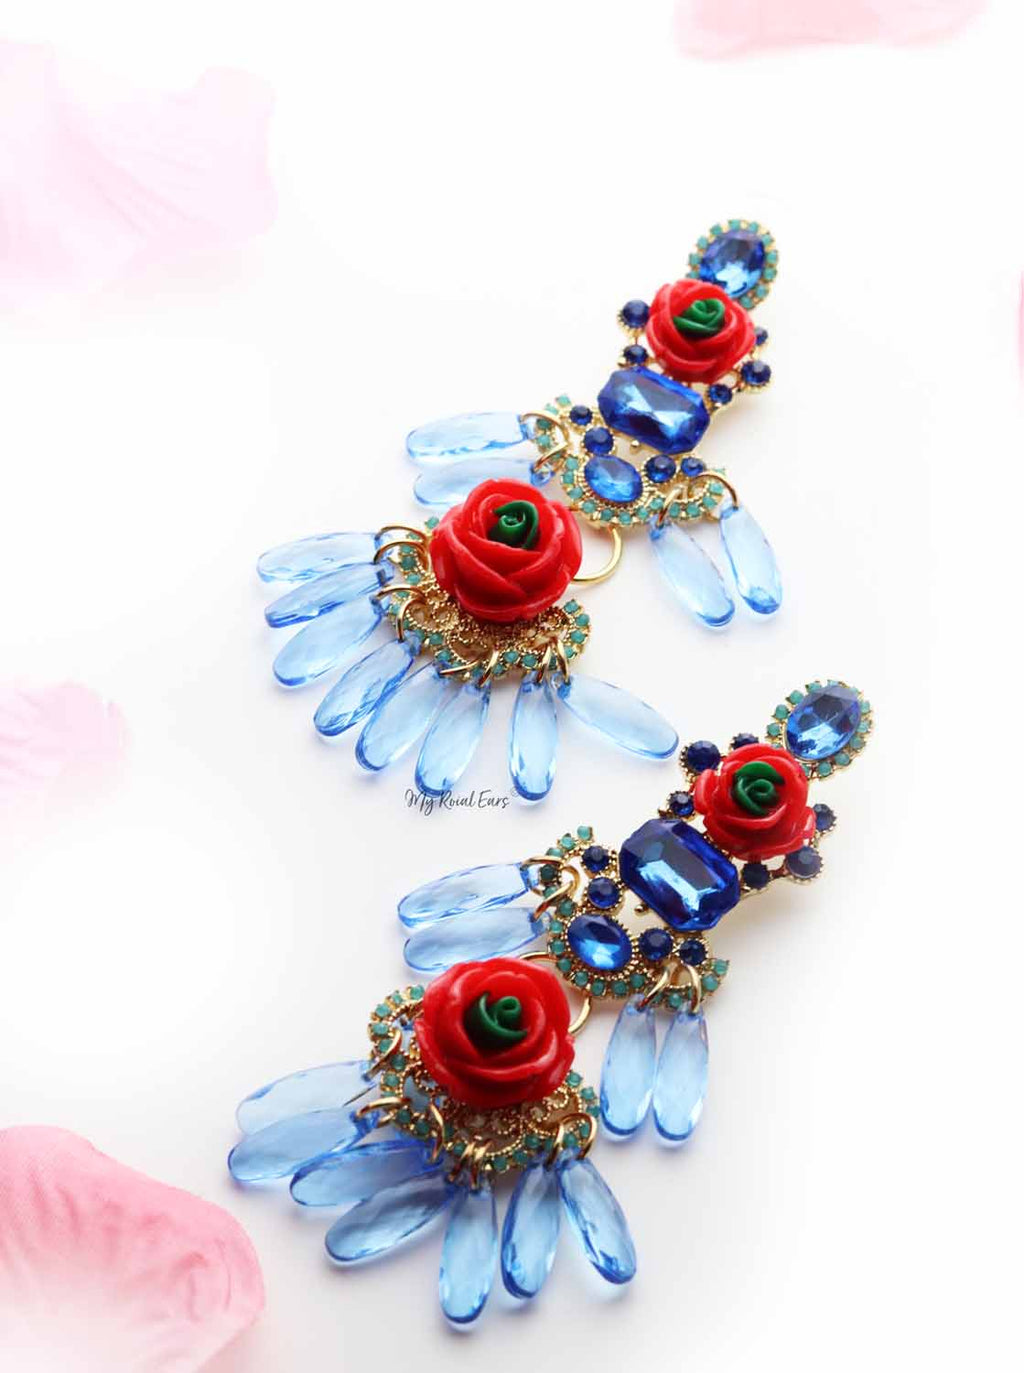 Foxglove Blue-tassel statement drop earrings - My Roial Ears LTD